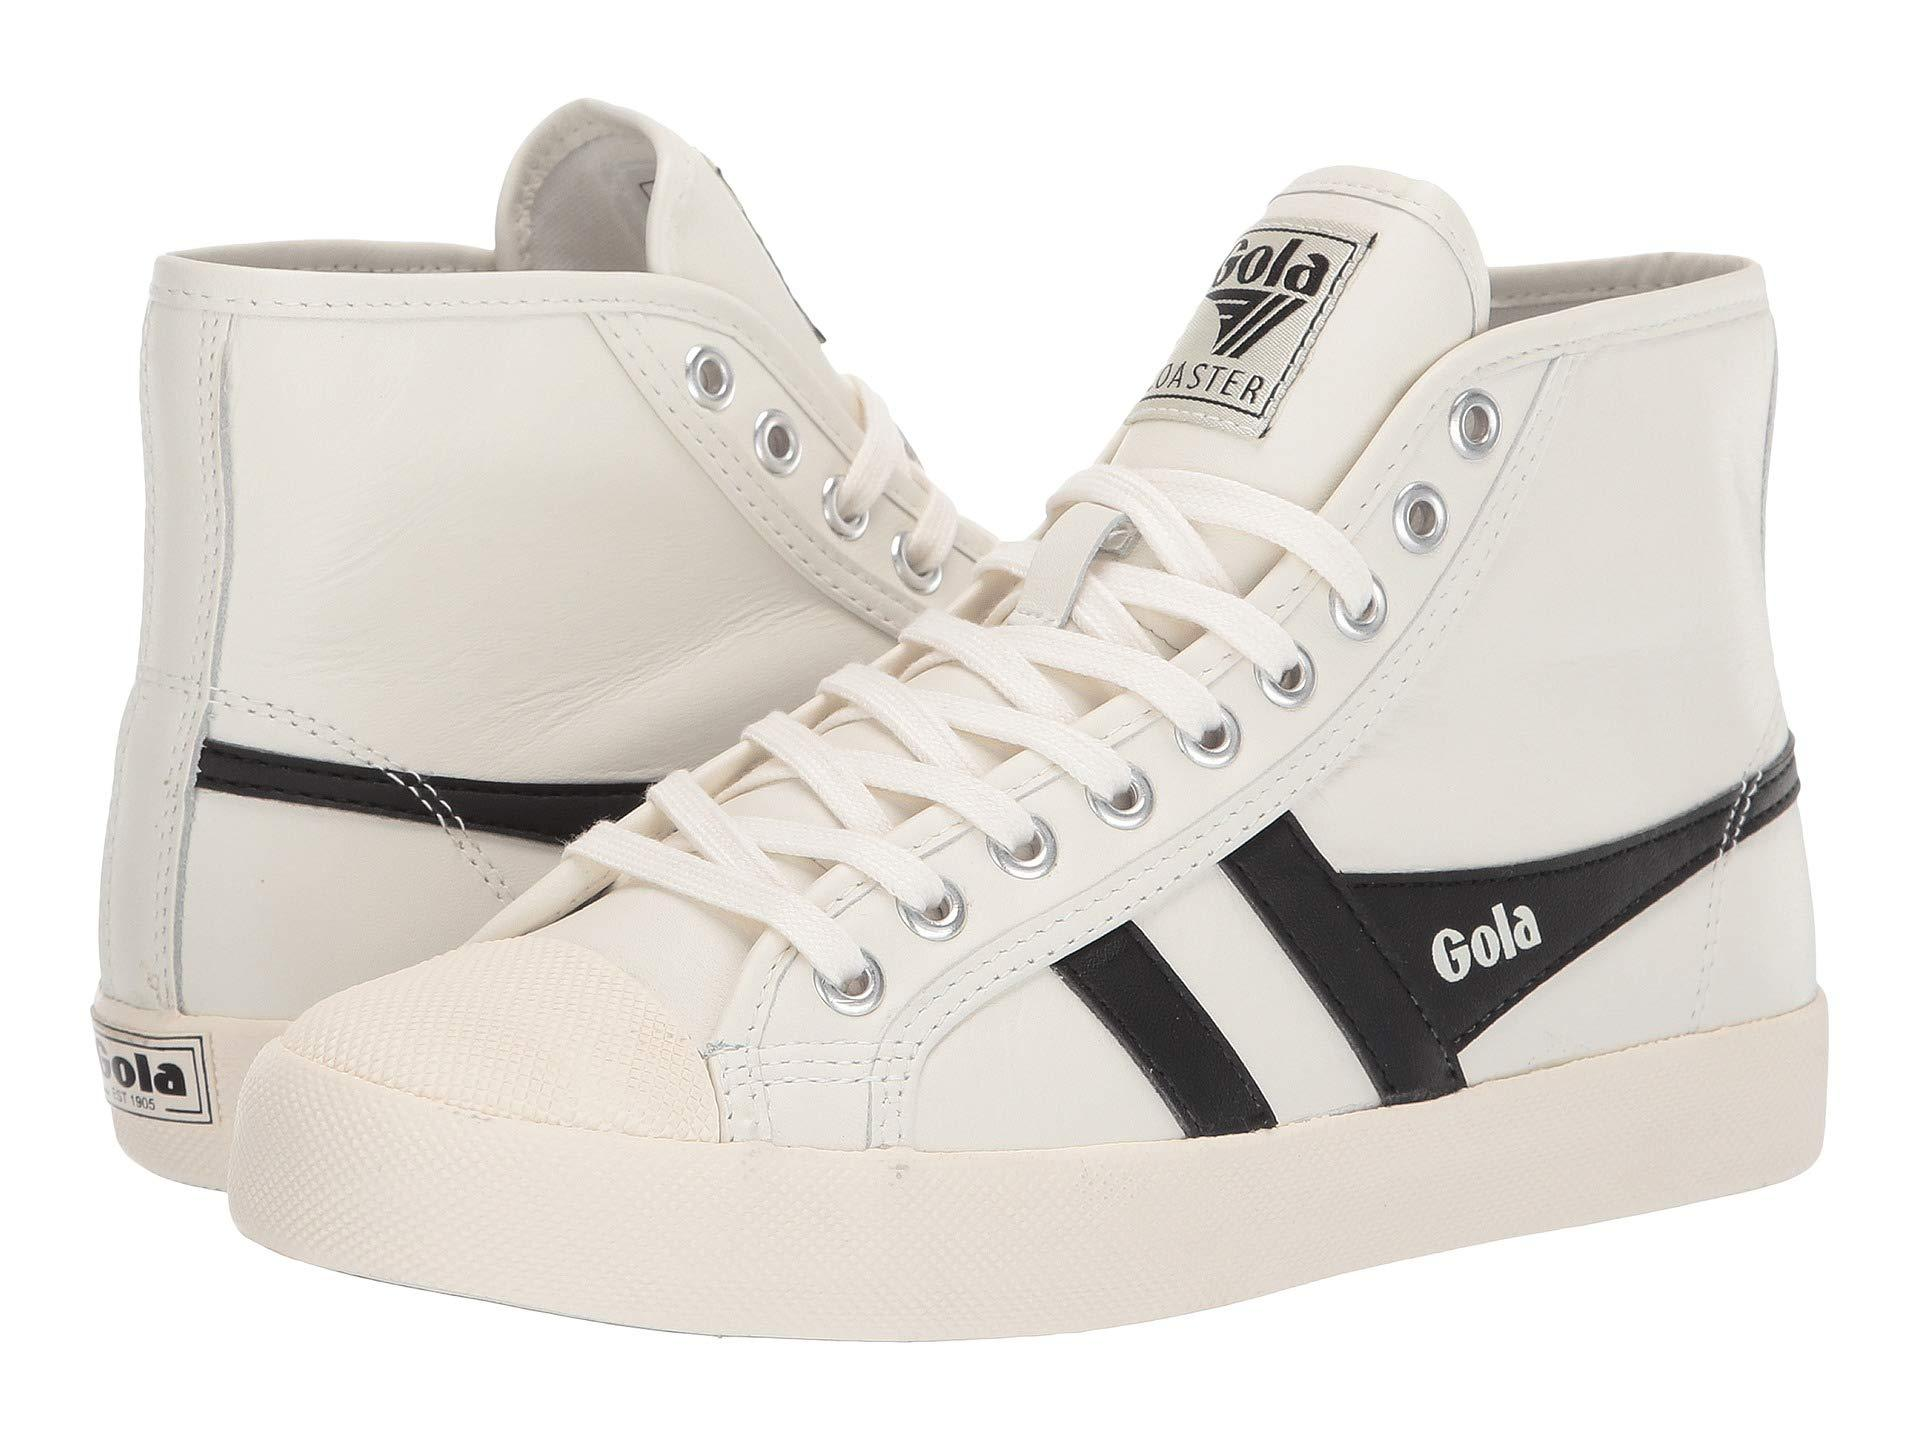 71337118788 Lyst - Gola Coaster High Leather (off-white black) Women s Shoes in ...